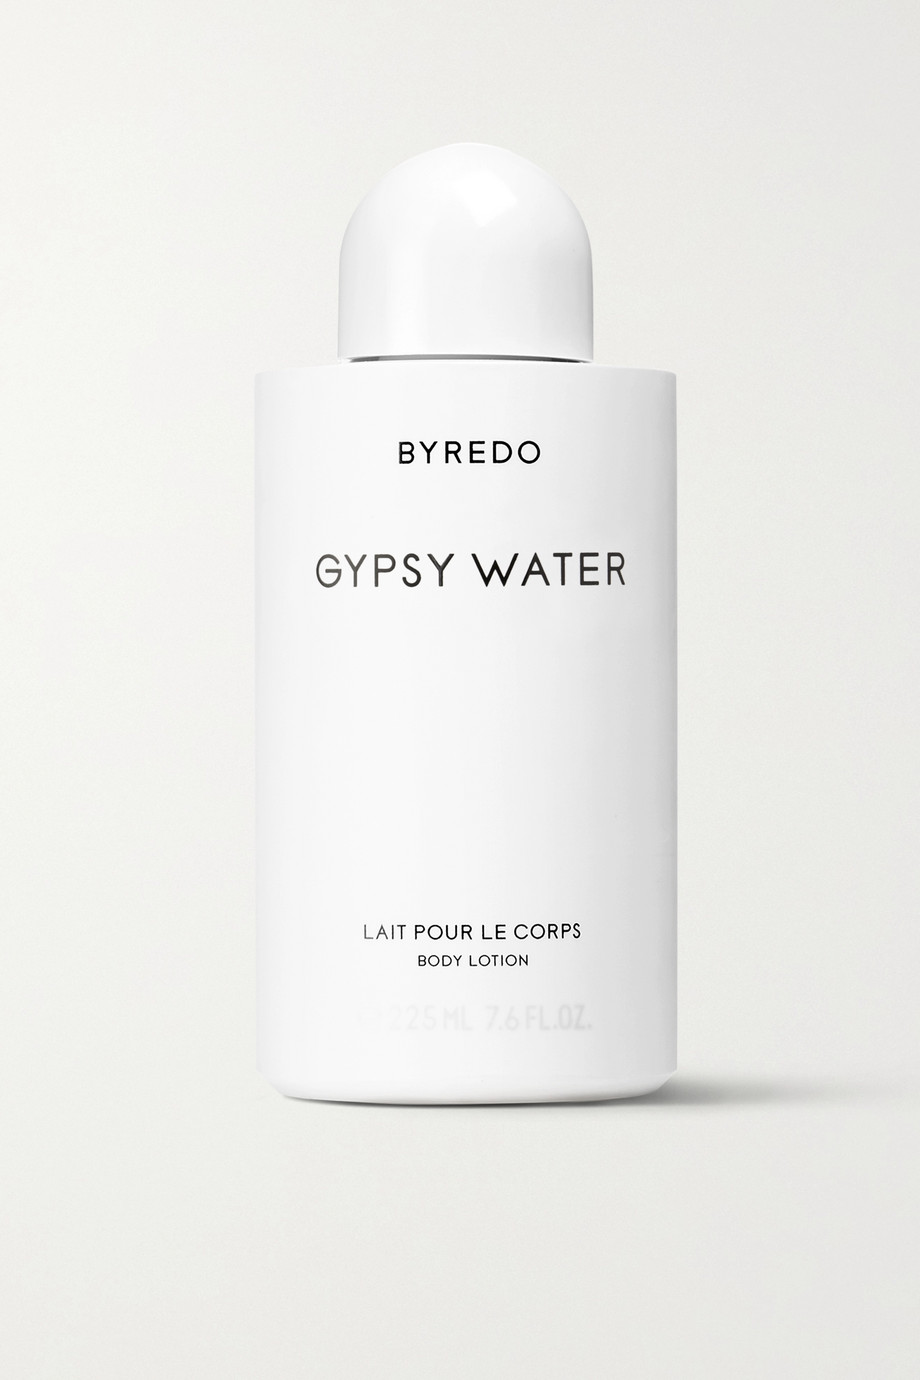 Byredo Gypsy Water Body Lotion, 225ml